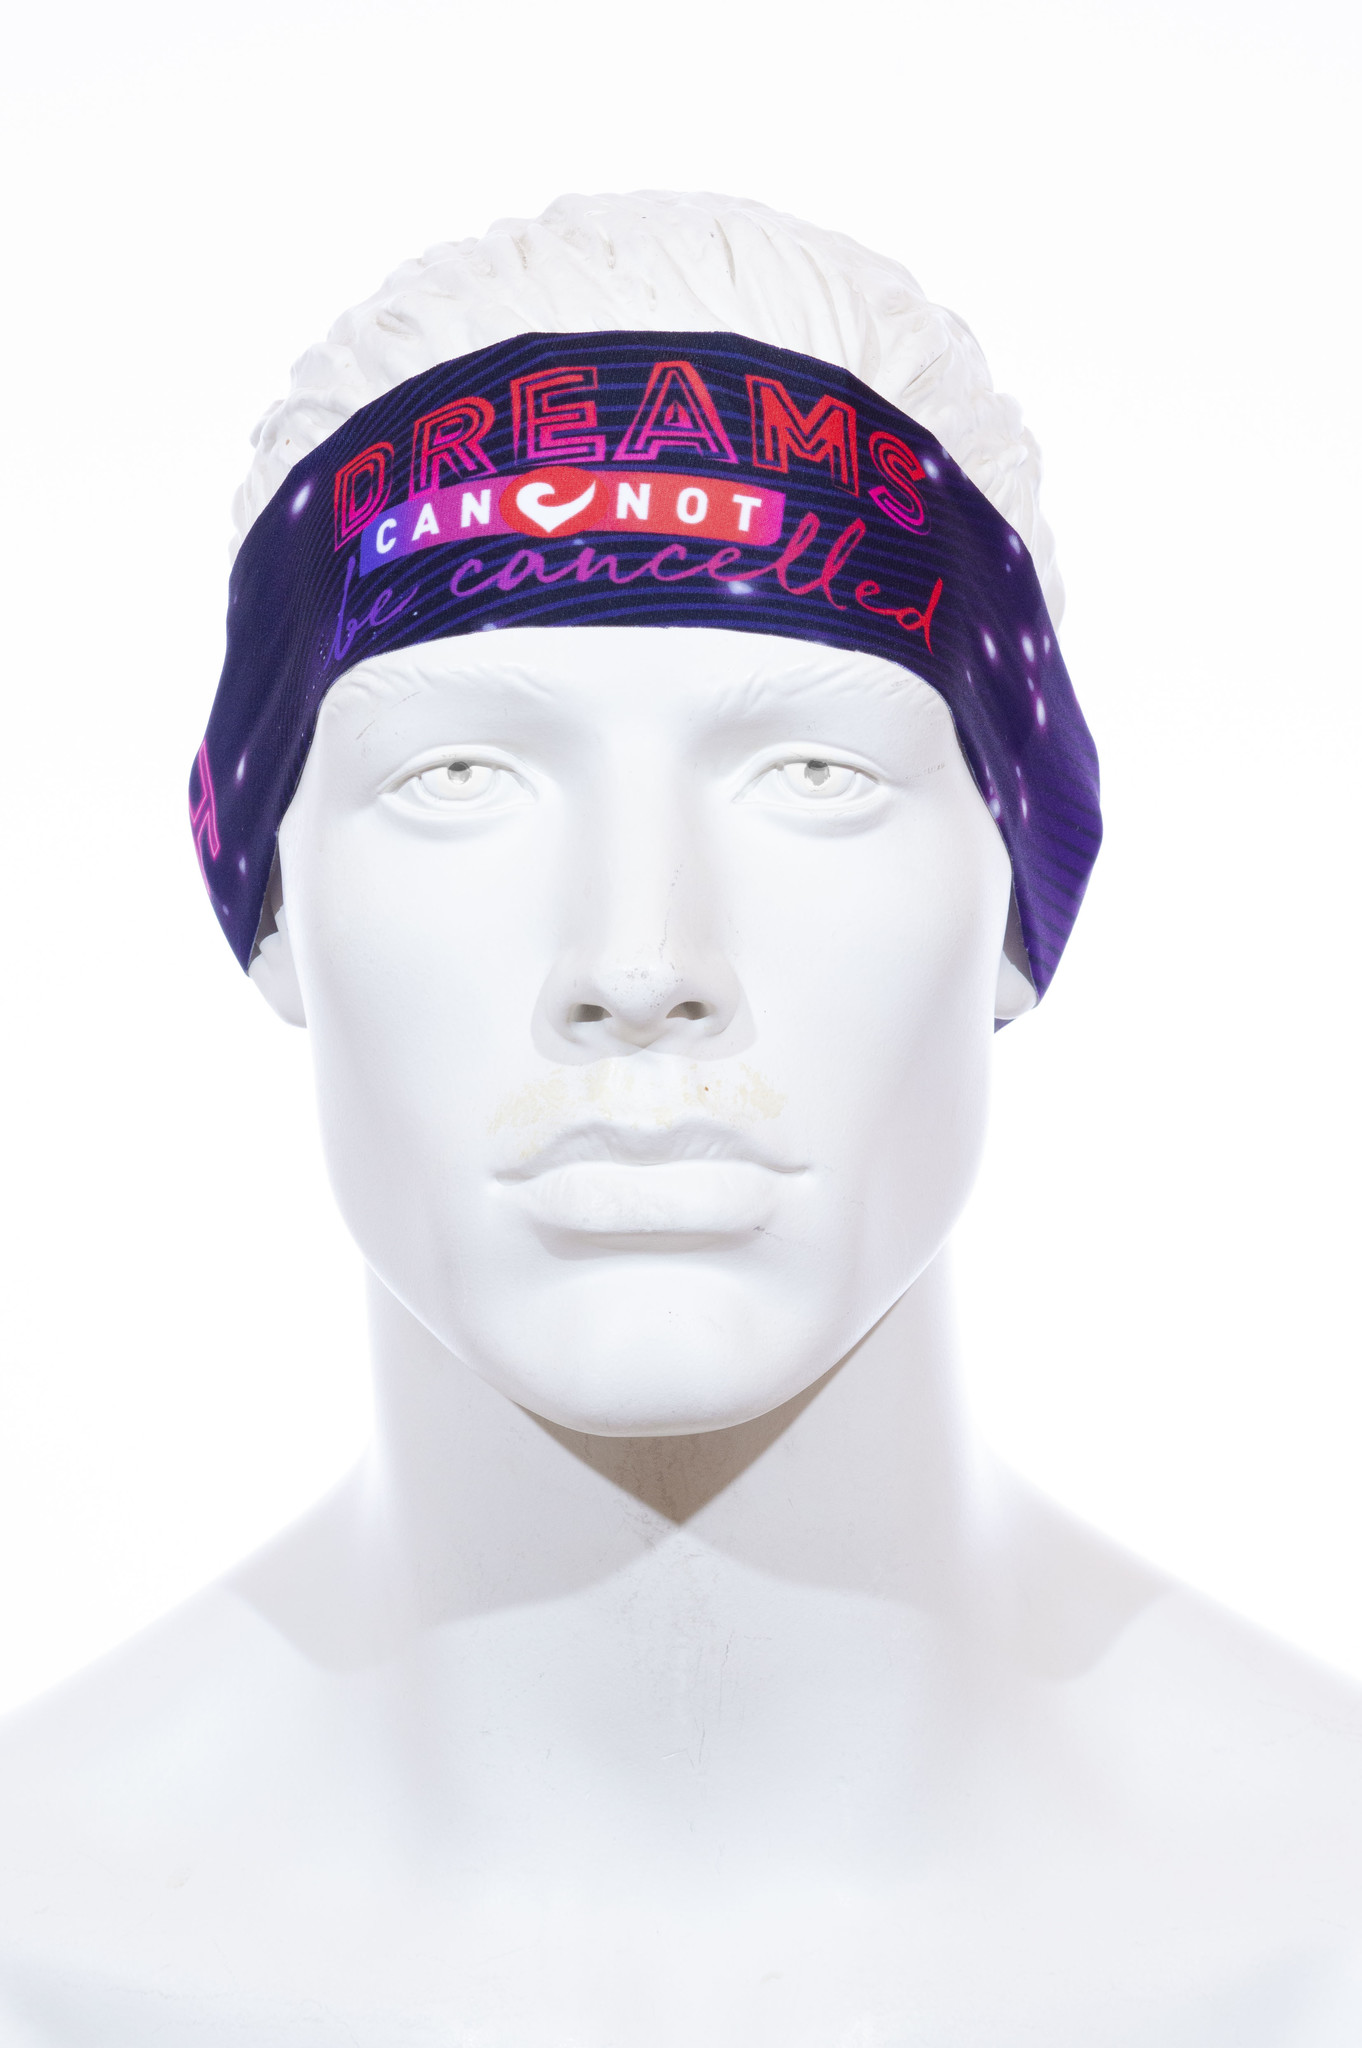 Functional Headband Dreams cannot be cancelled-1